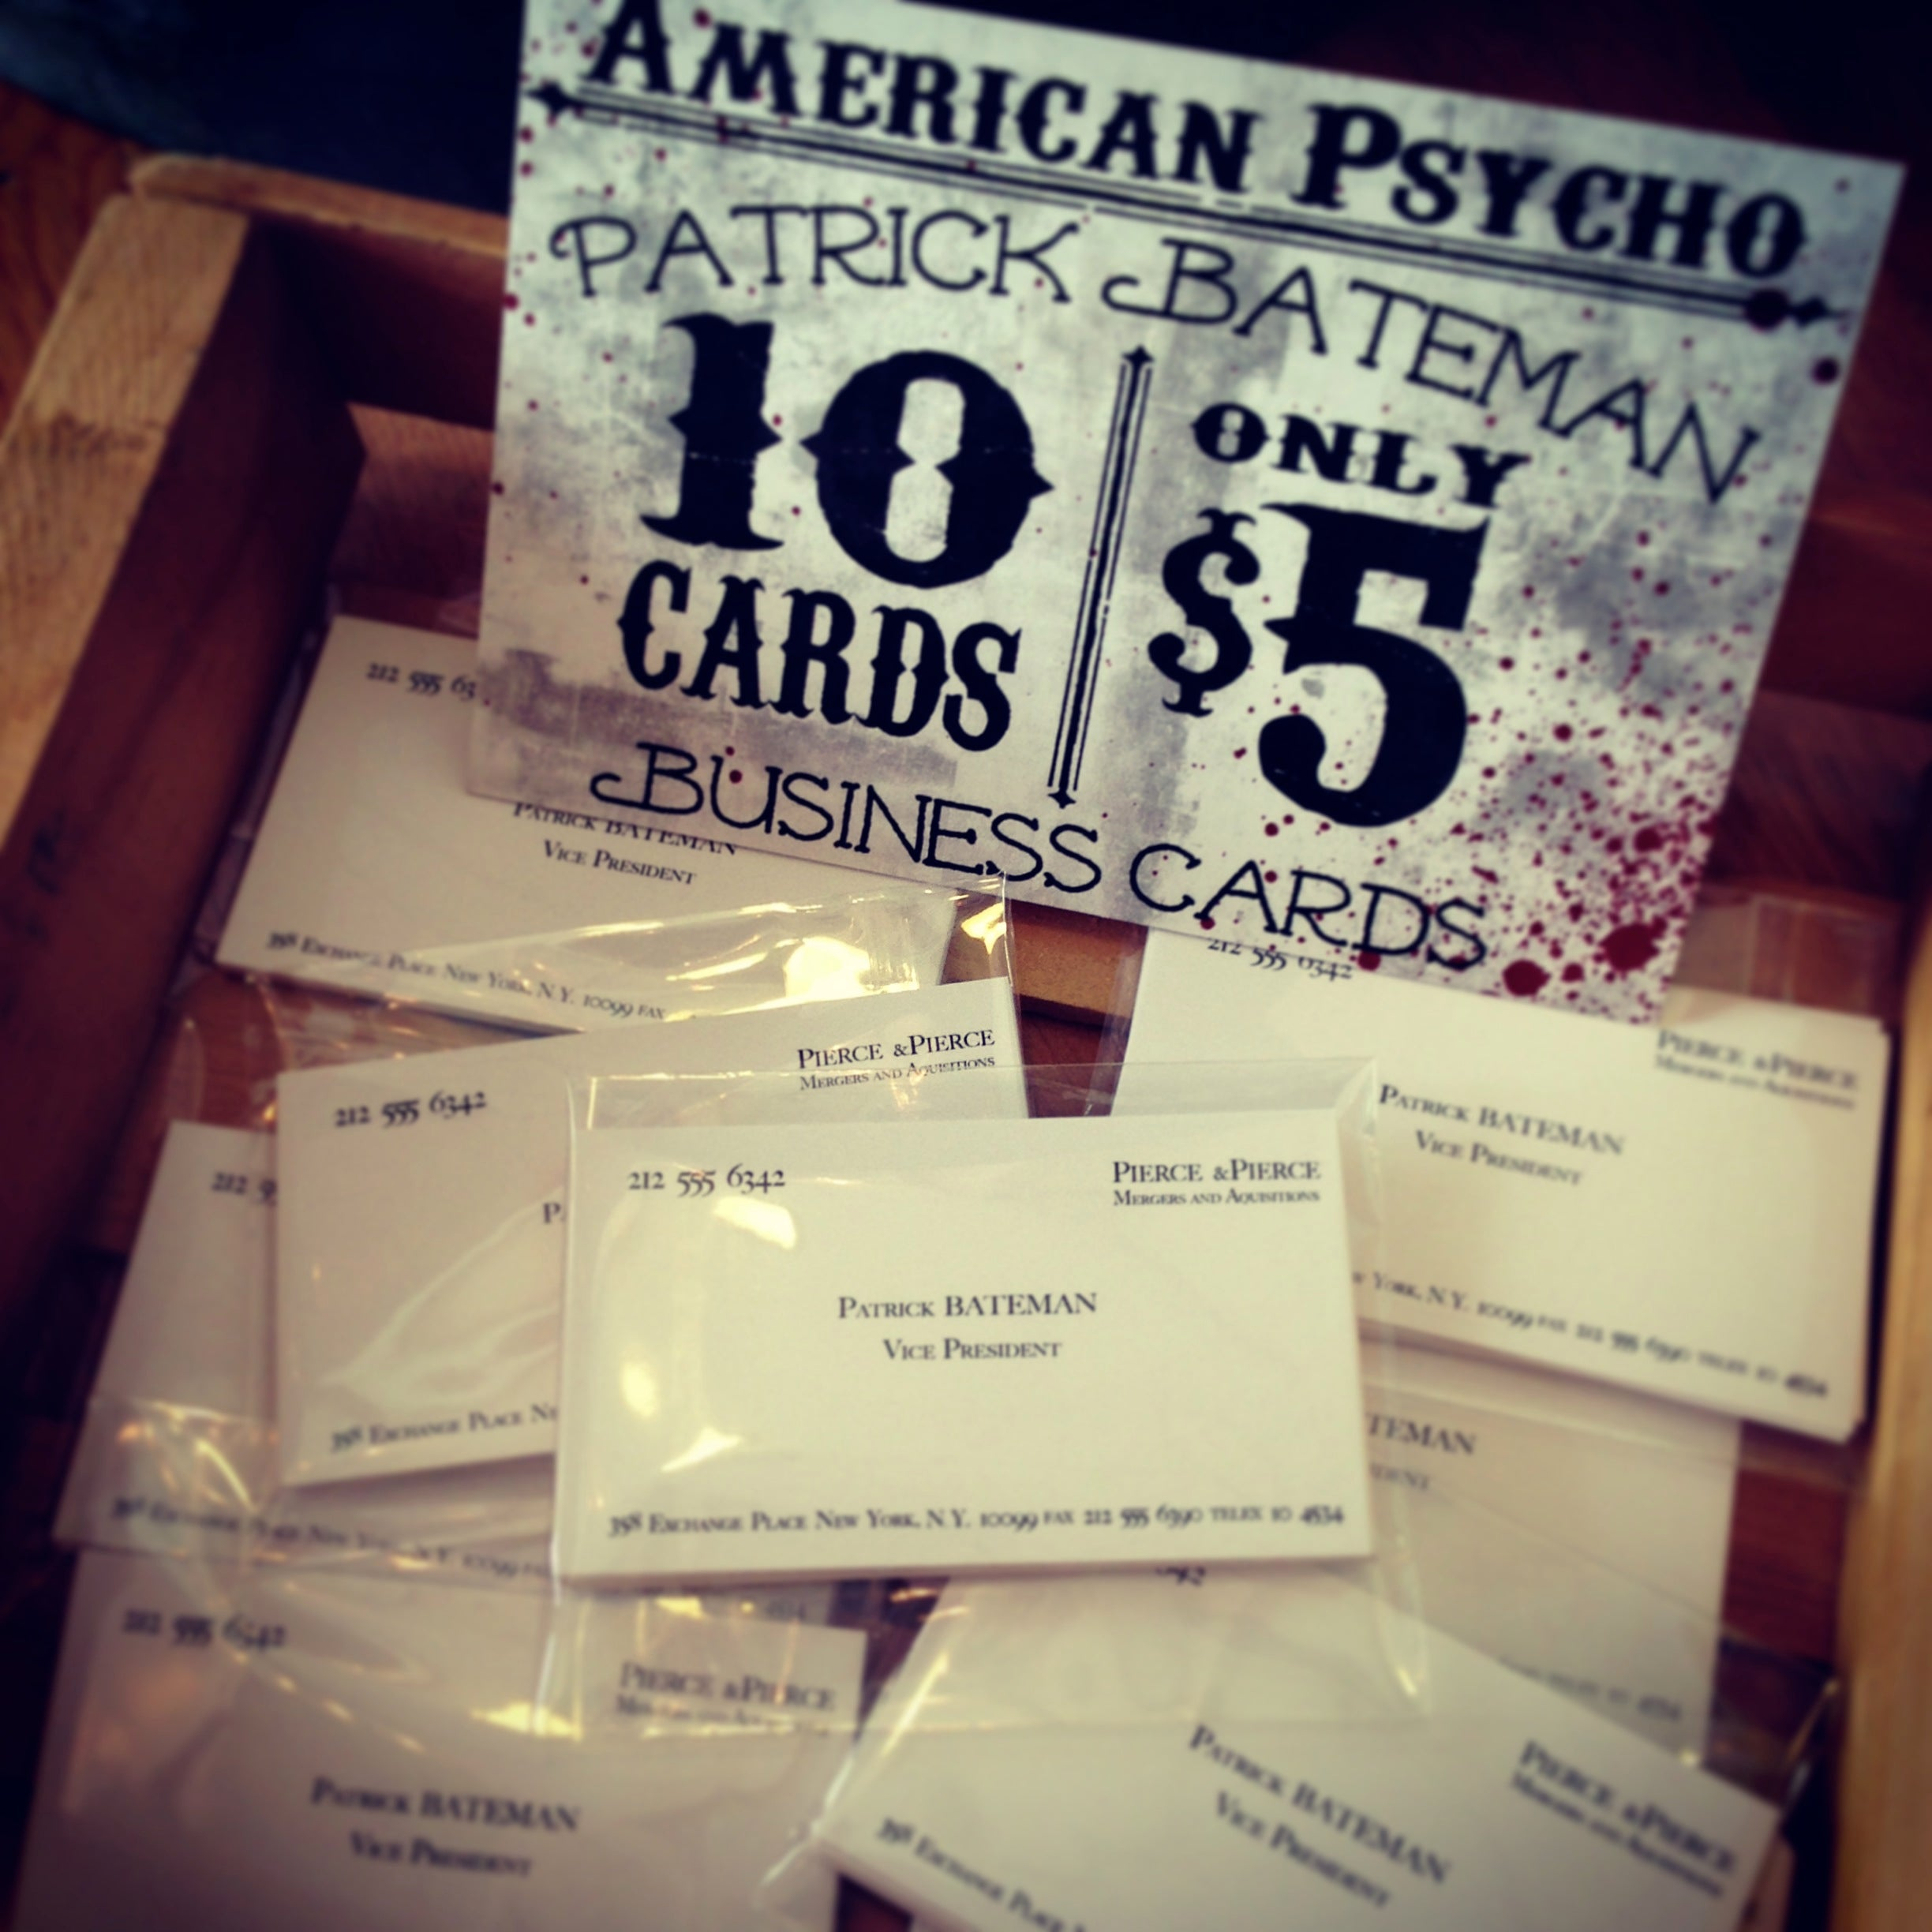 Patrick bateman business cards american psycho thirteenth floor patrick bateman business cards american psycho magicingreecefo Image collections